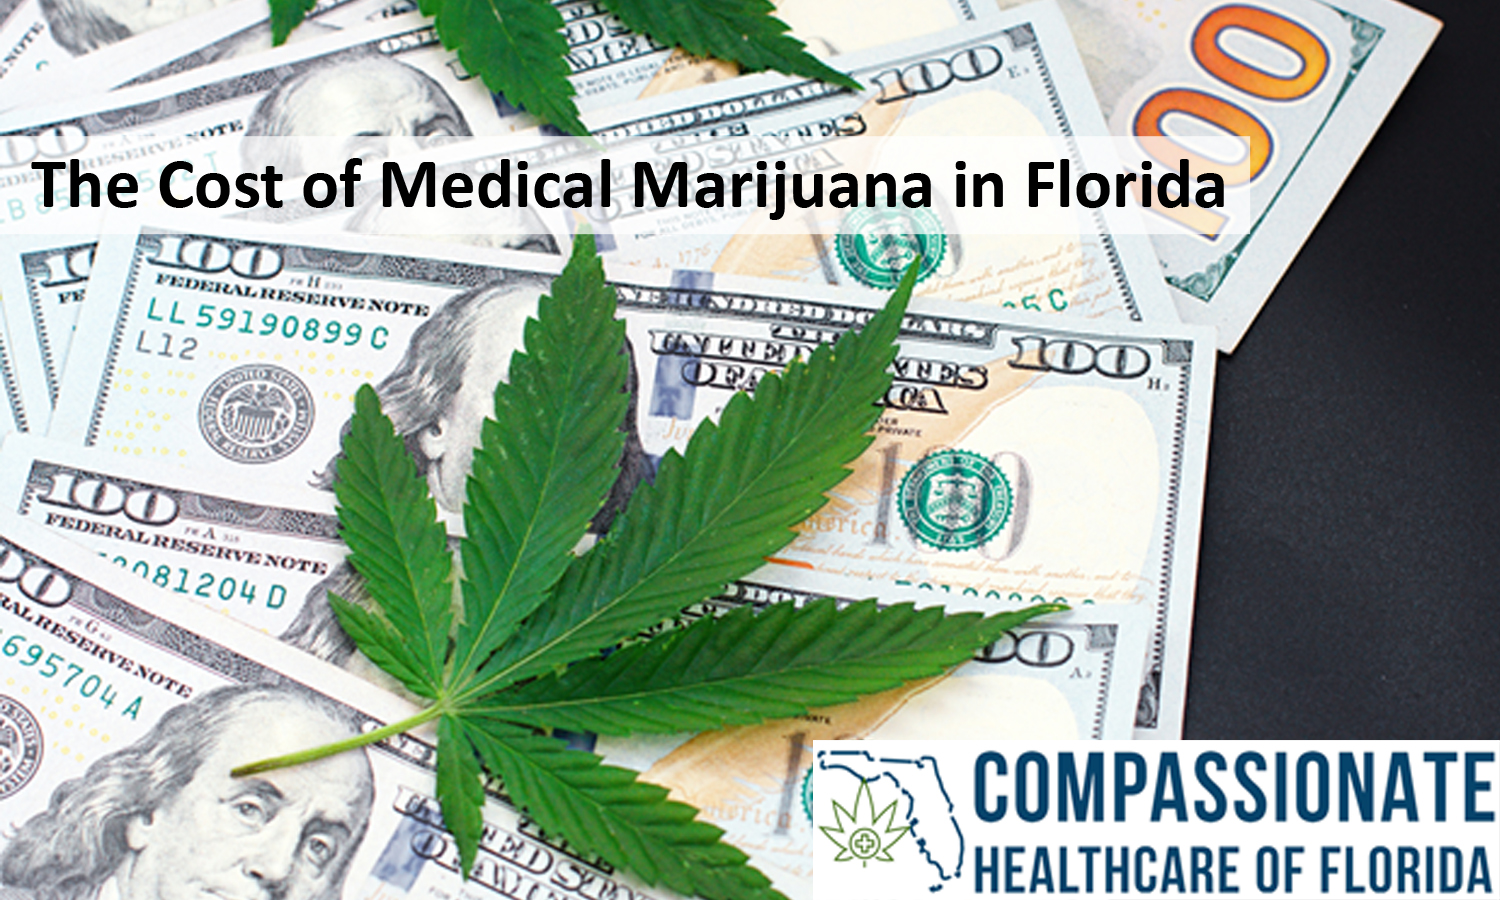 The Cost of Medical Marijuana in Florida